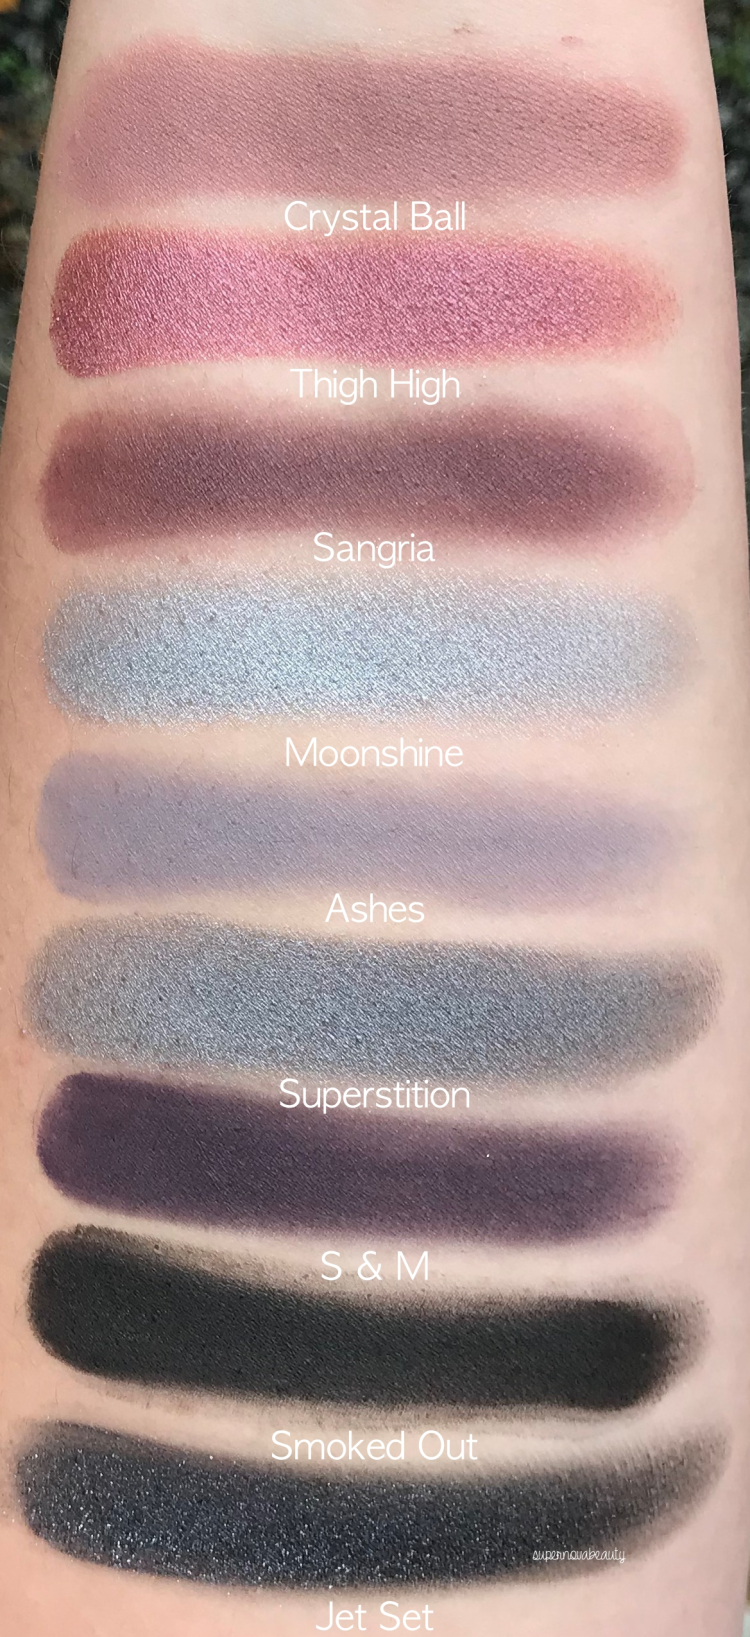 stilazzi-swatches-2.jpg